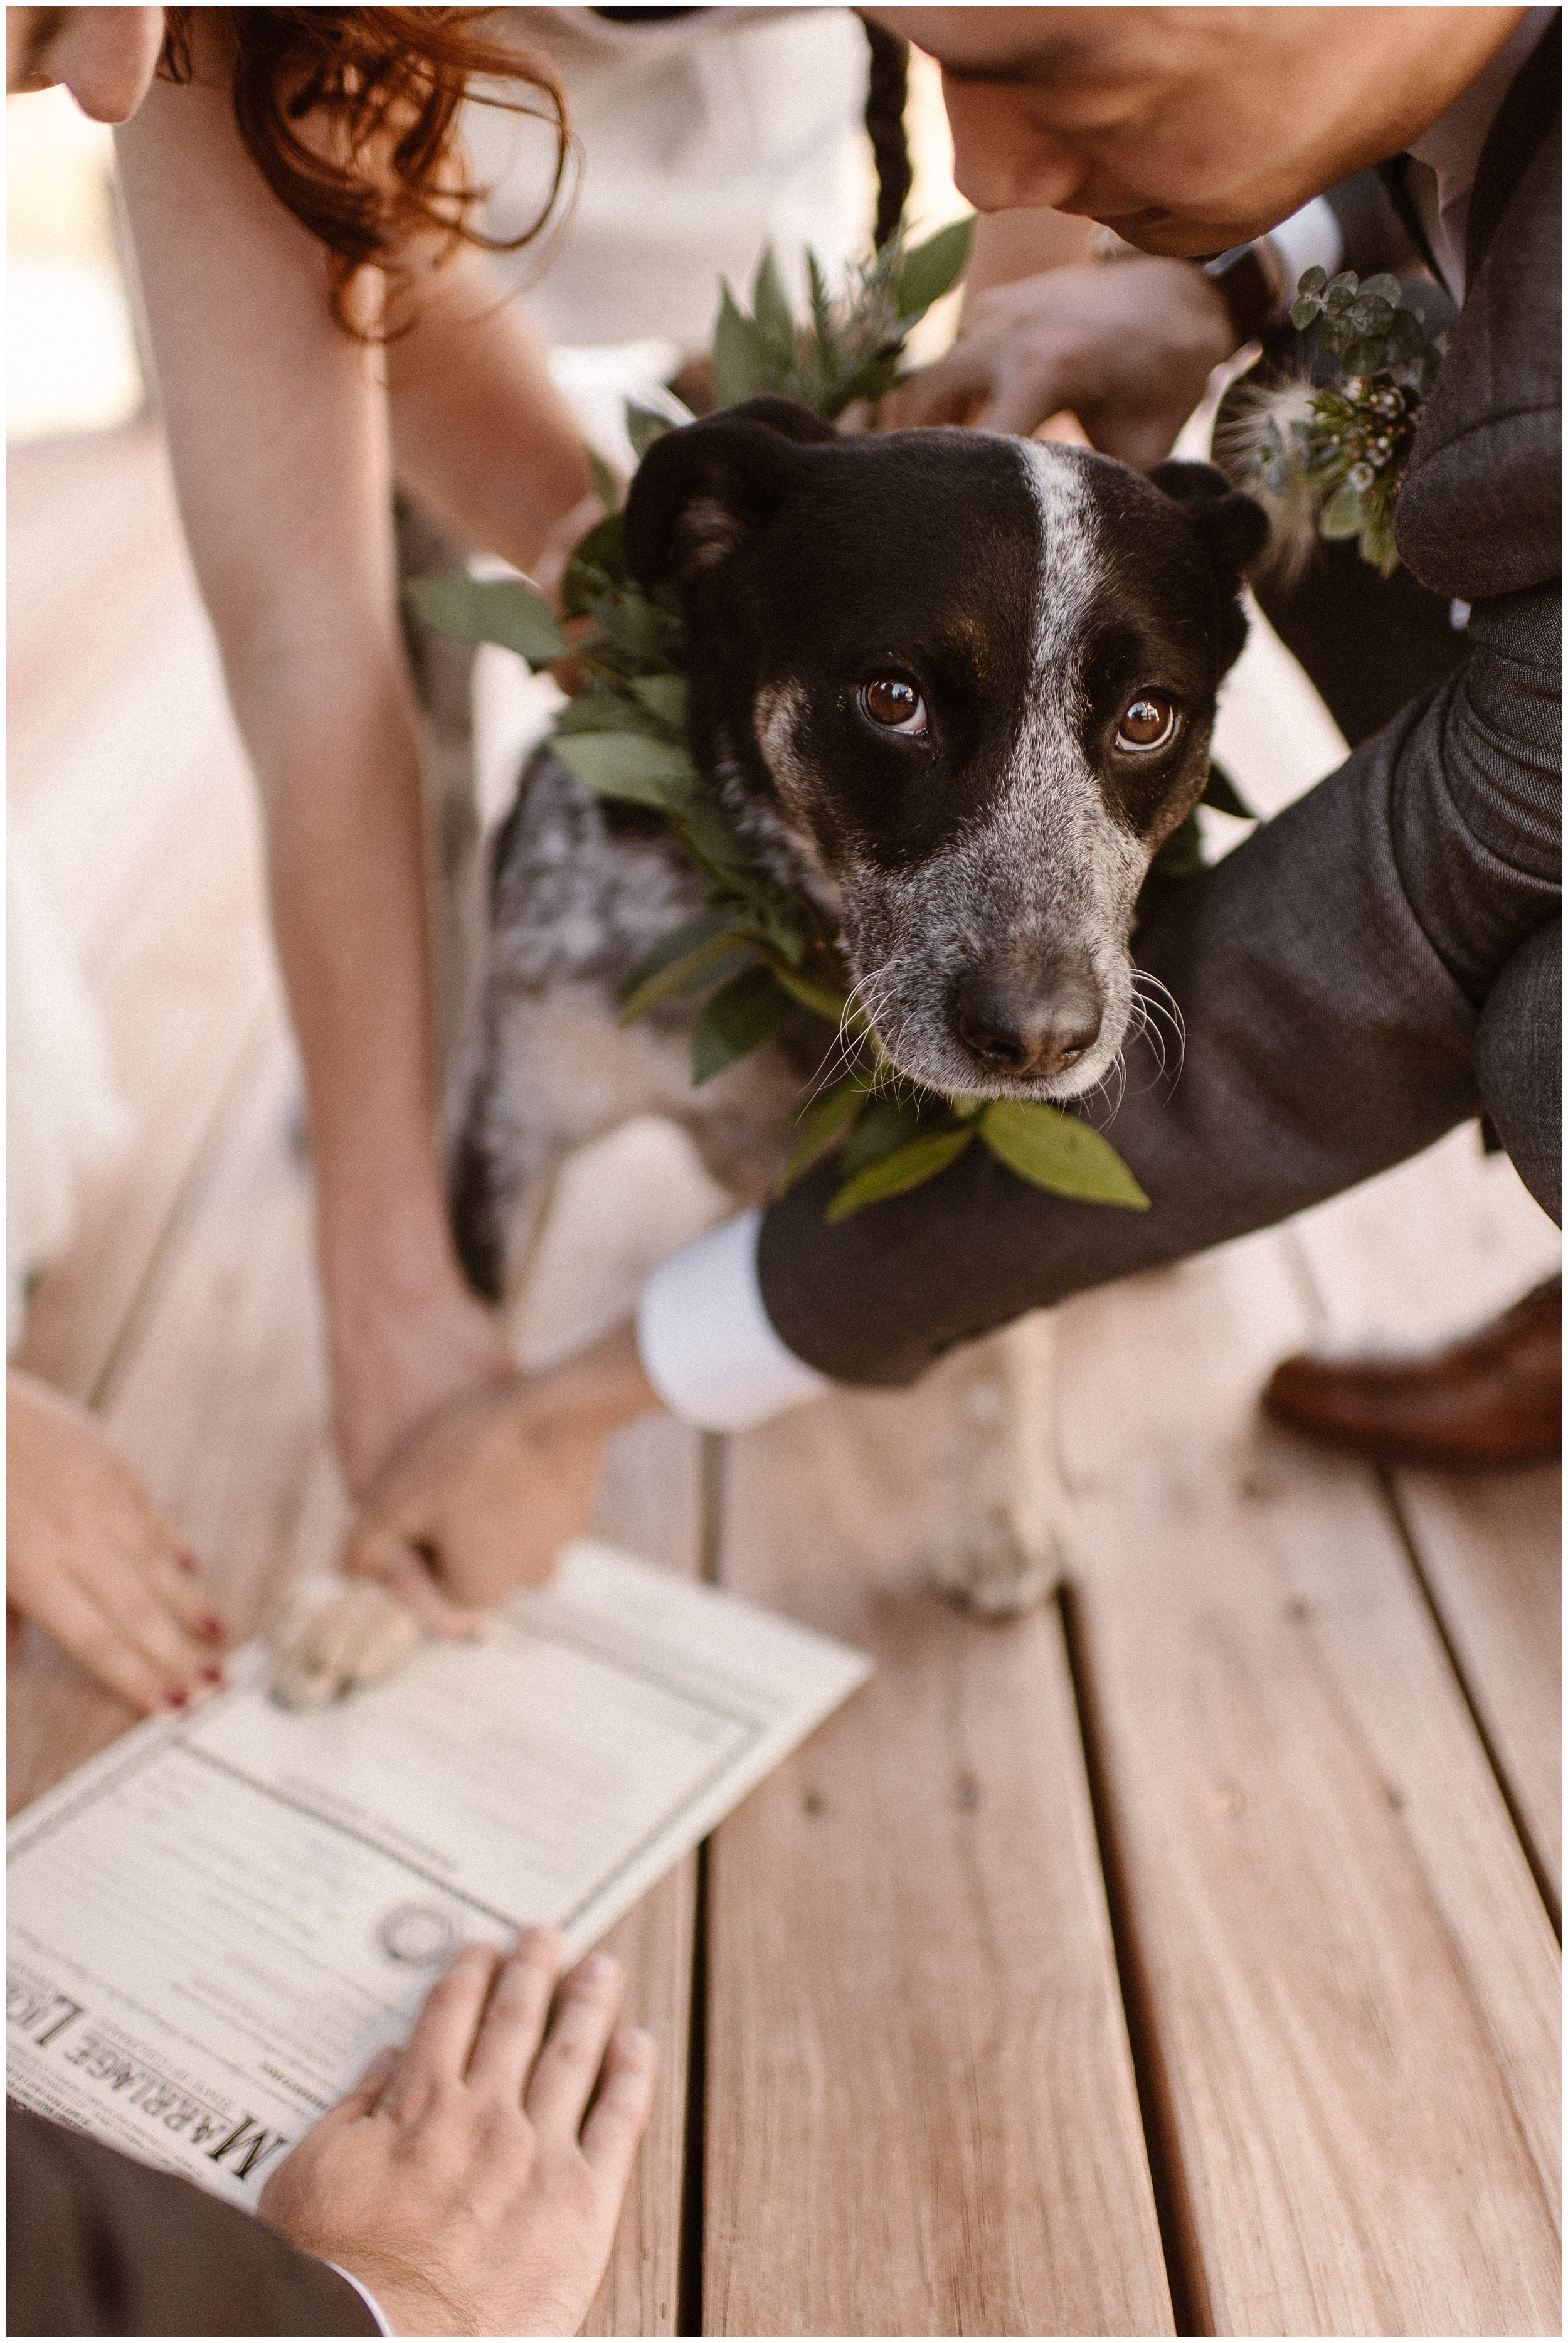 A pup lets his owners use his paw print to sign their marriage license in this elopement photo captured by Adventure Instead, an elopement wedding photographer. This is a great idea on how to include your dog in your wedding — letting them sign as a witness!